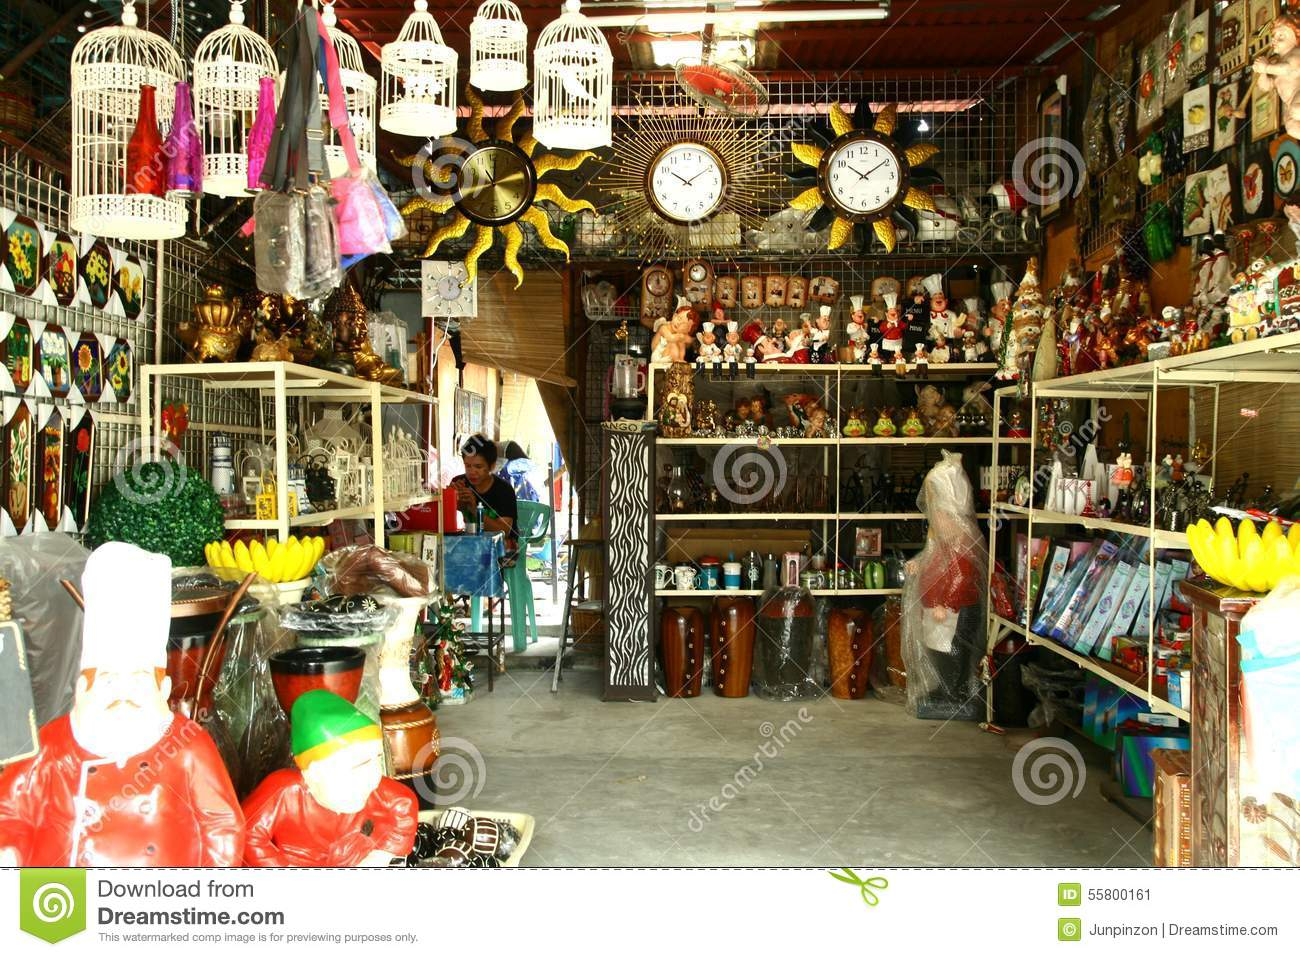 Furniture shops in manila - Flea Market Stores In Dapitan Arcade In Manila Philippines Selling Houseware And Home Decor Decor